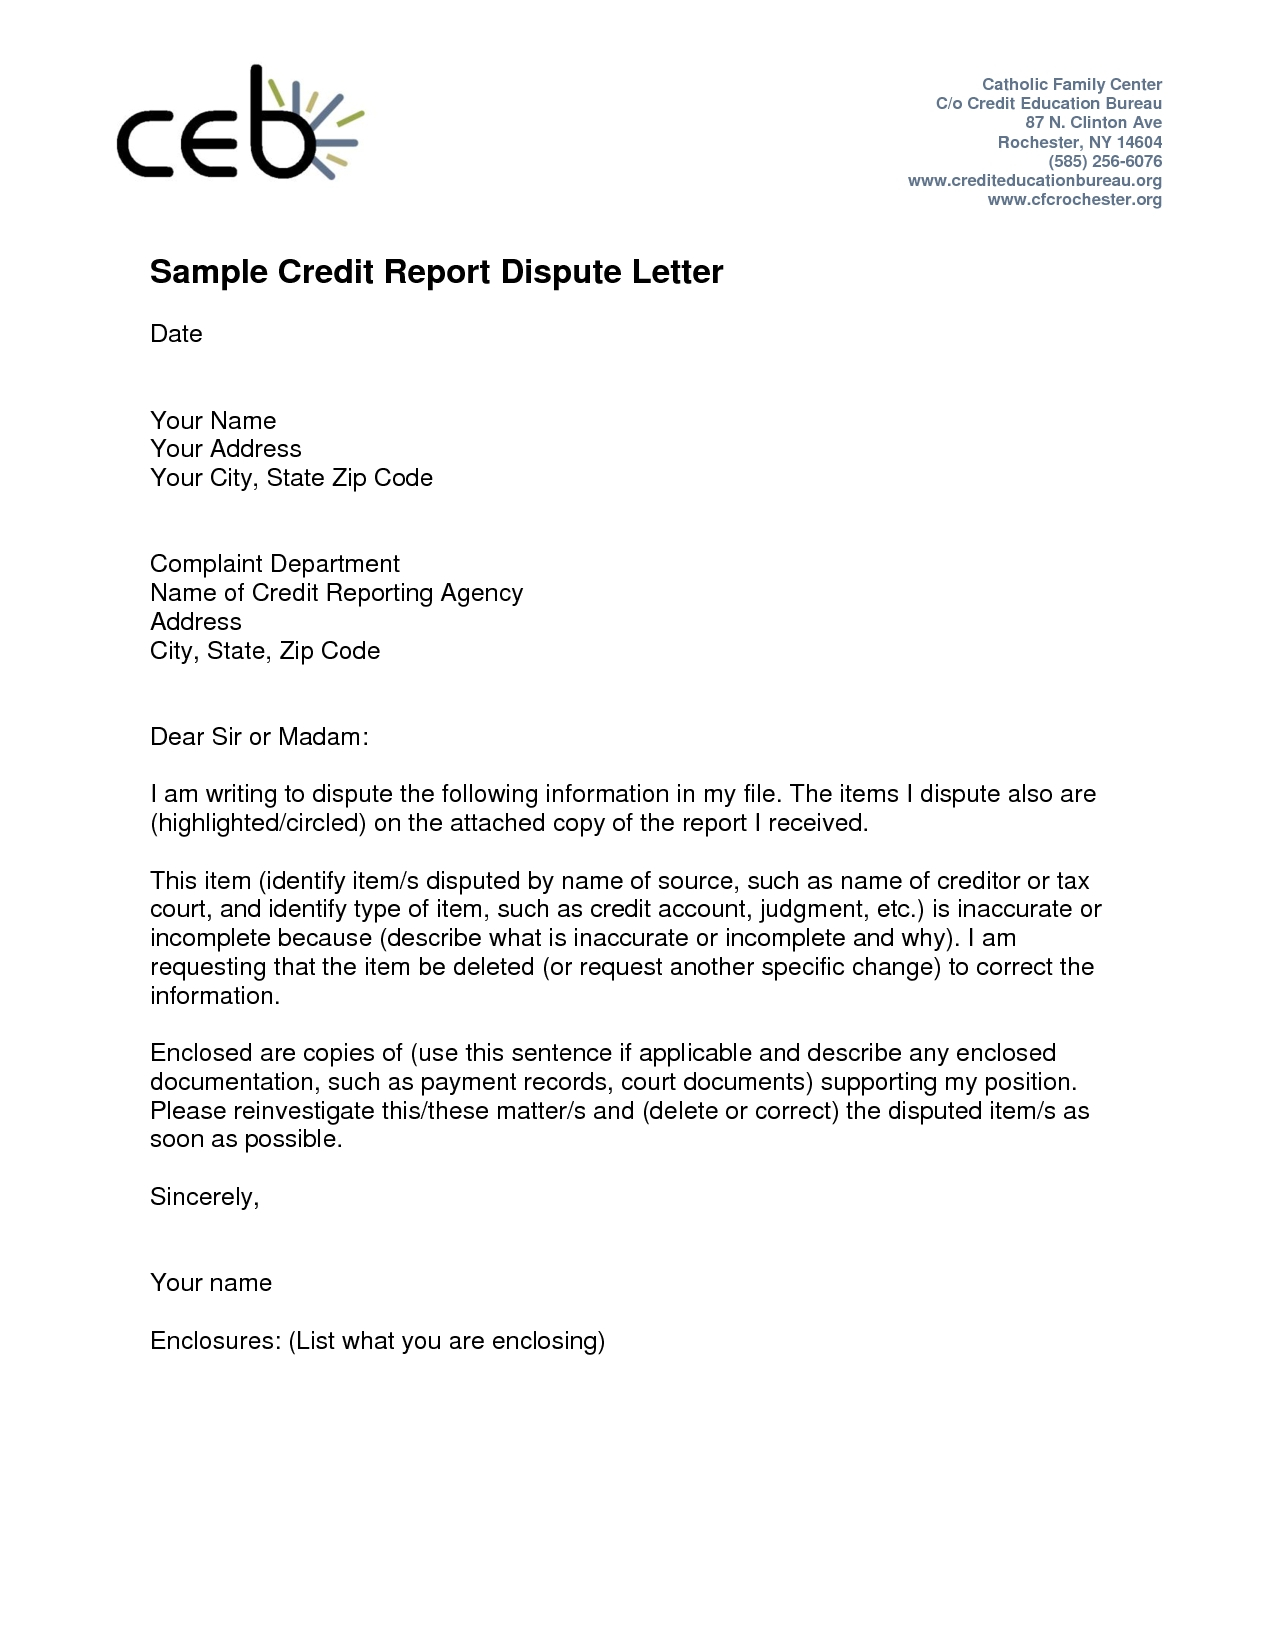 Collection Dispute Letter Template - Credit Dispute Letter Templates Acurnamedia